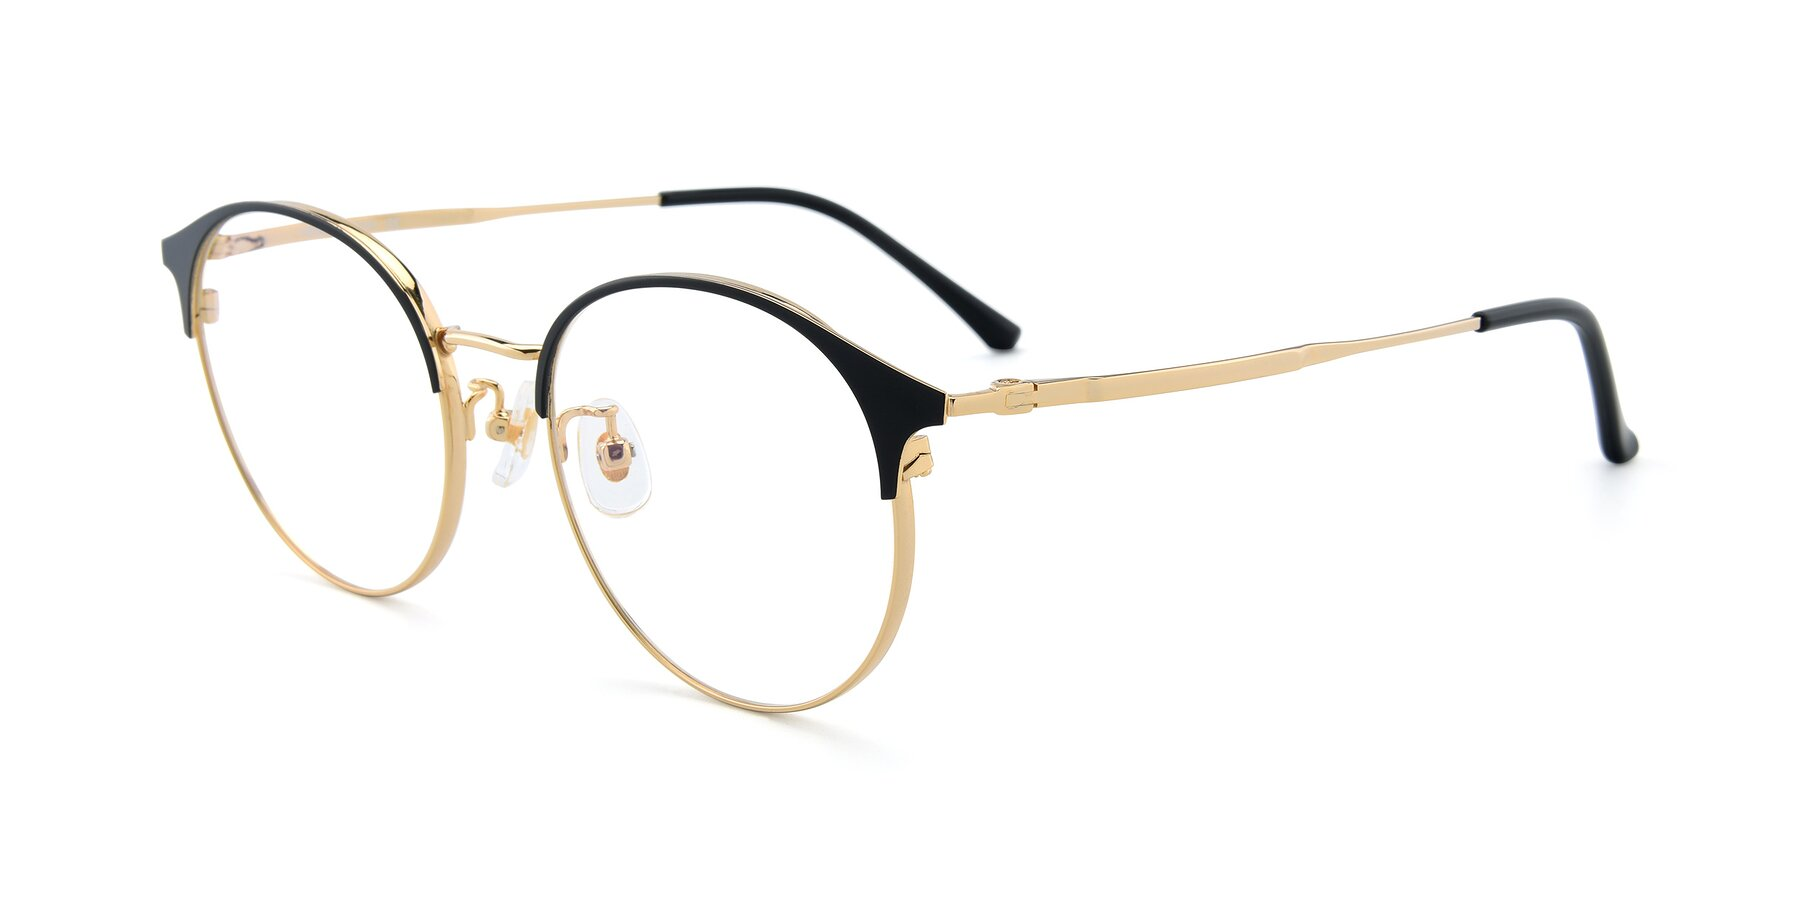 Angle of XC-8031 in Black-Gold with Clear Eyeglass Lenses